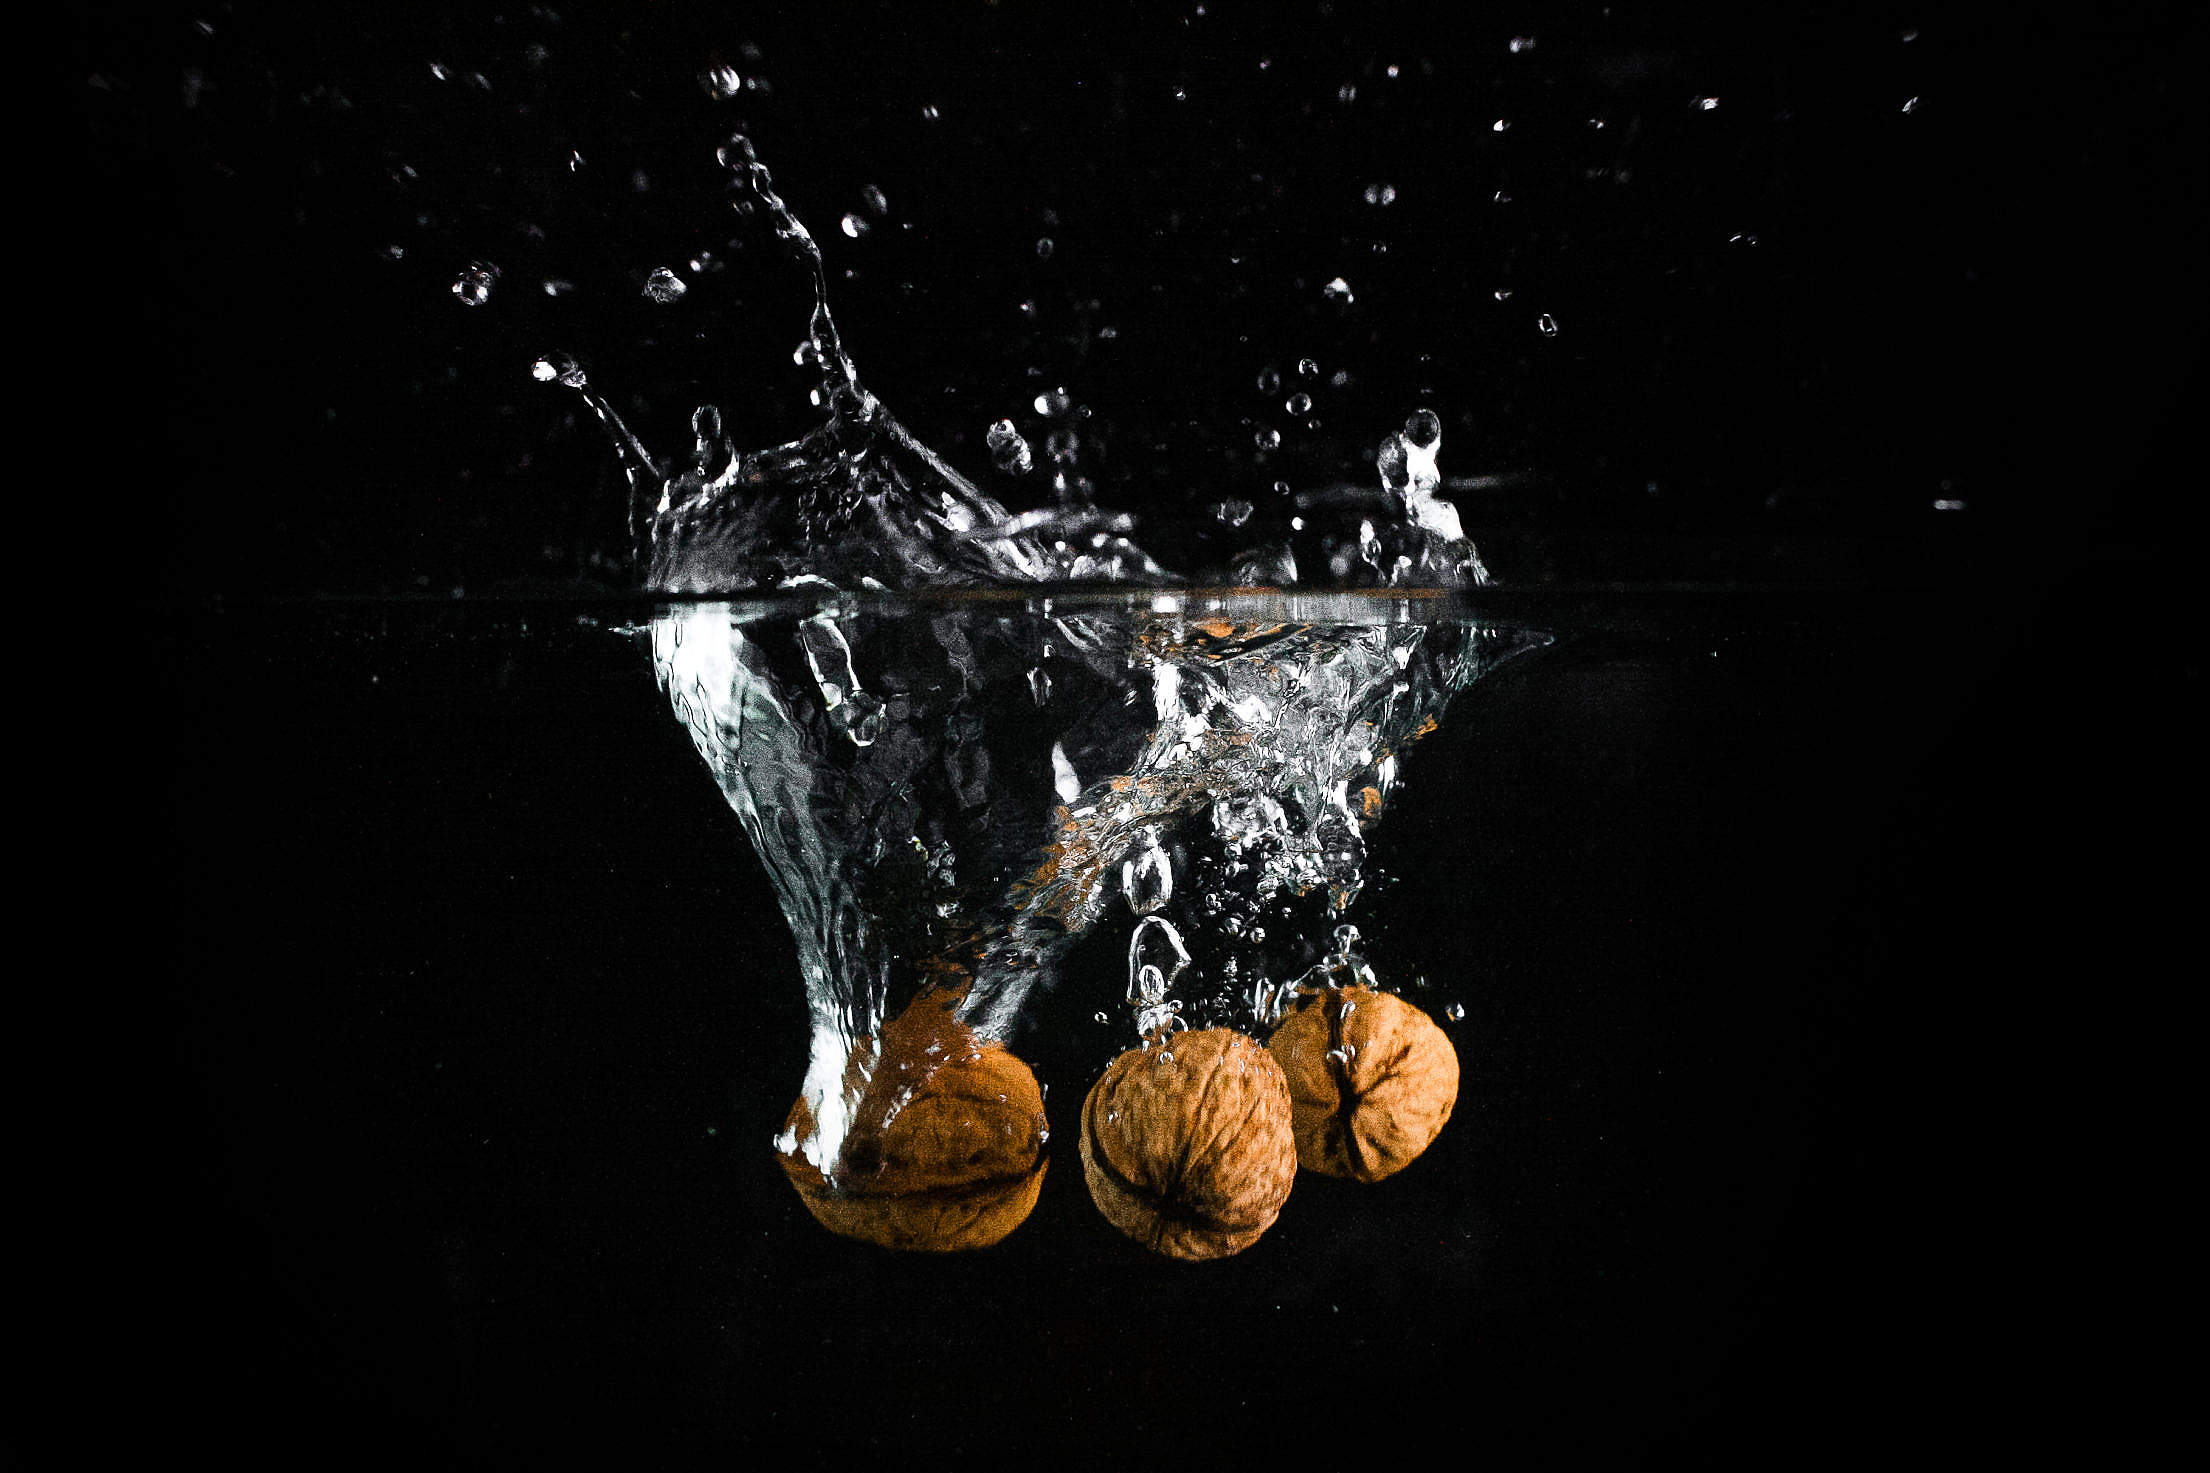 Three Nuts in Water Free Stock Photo